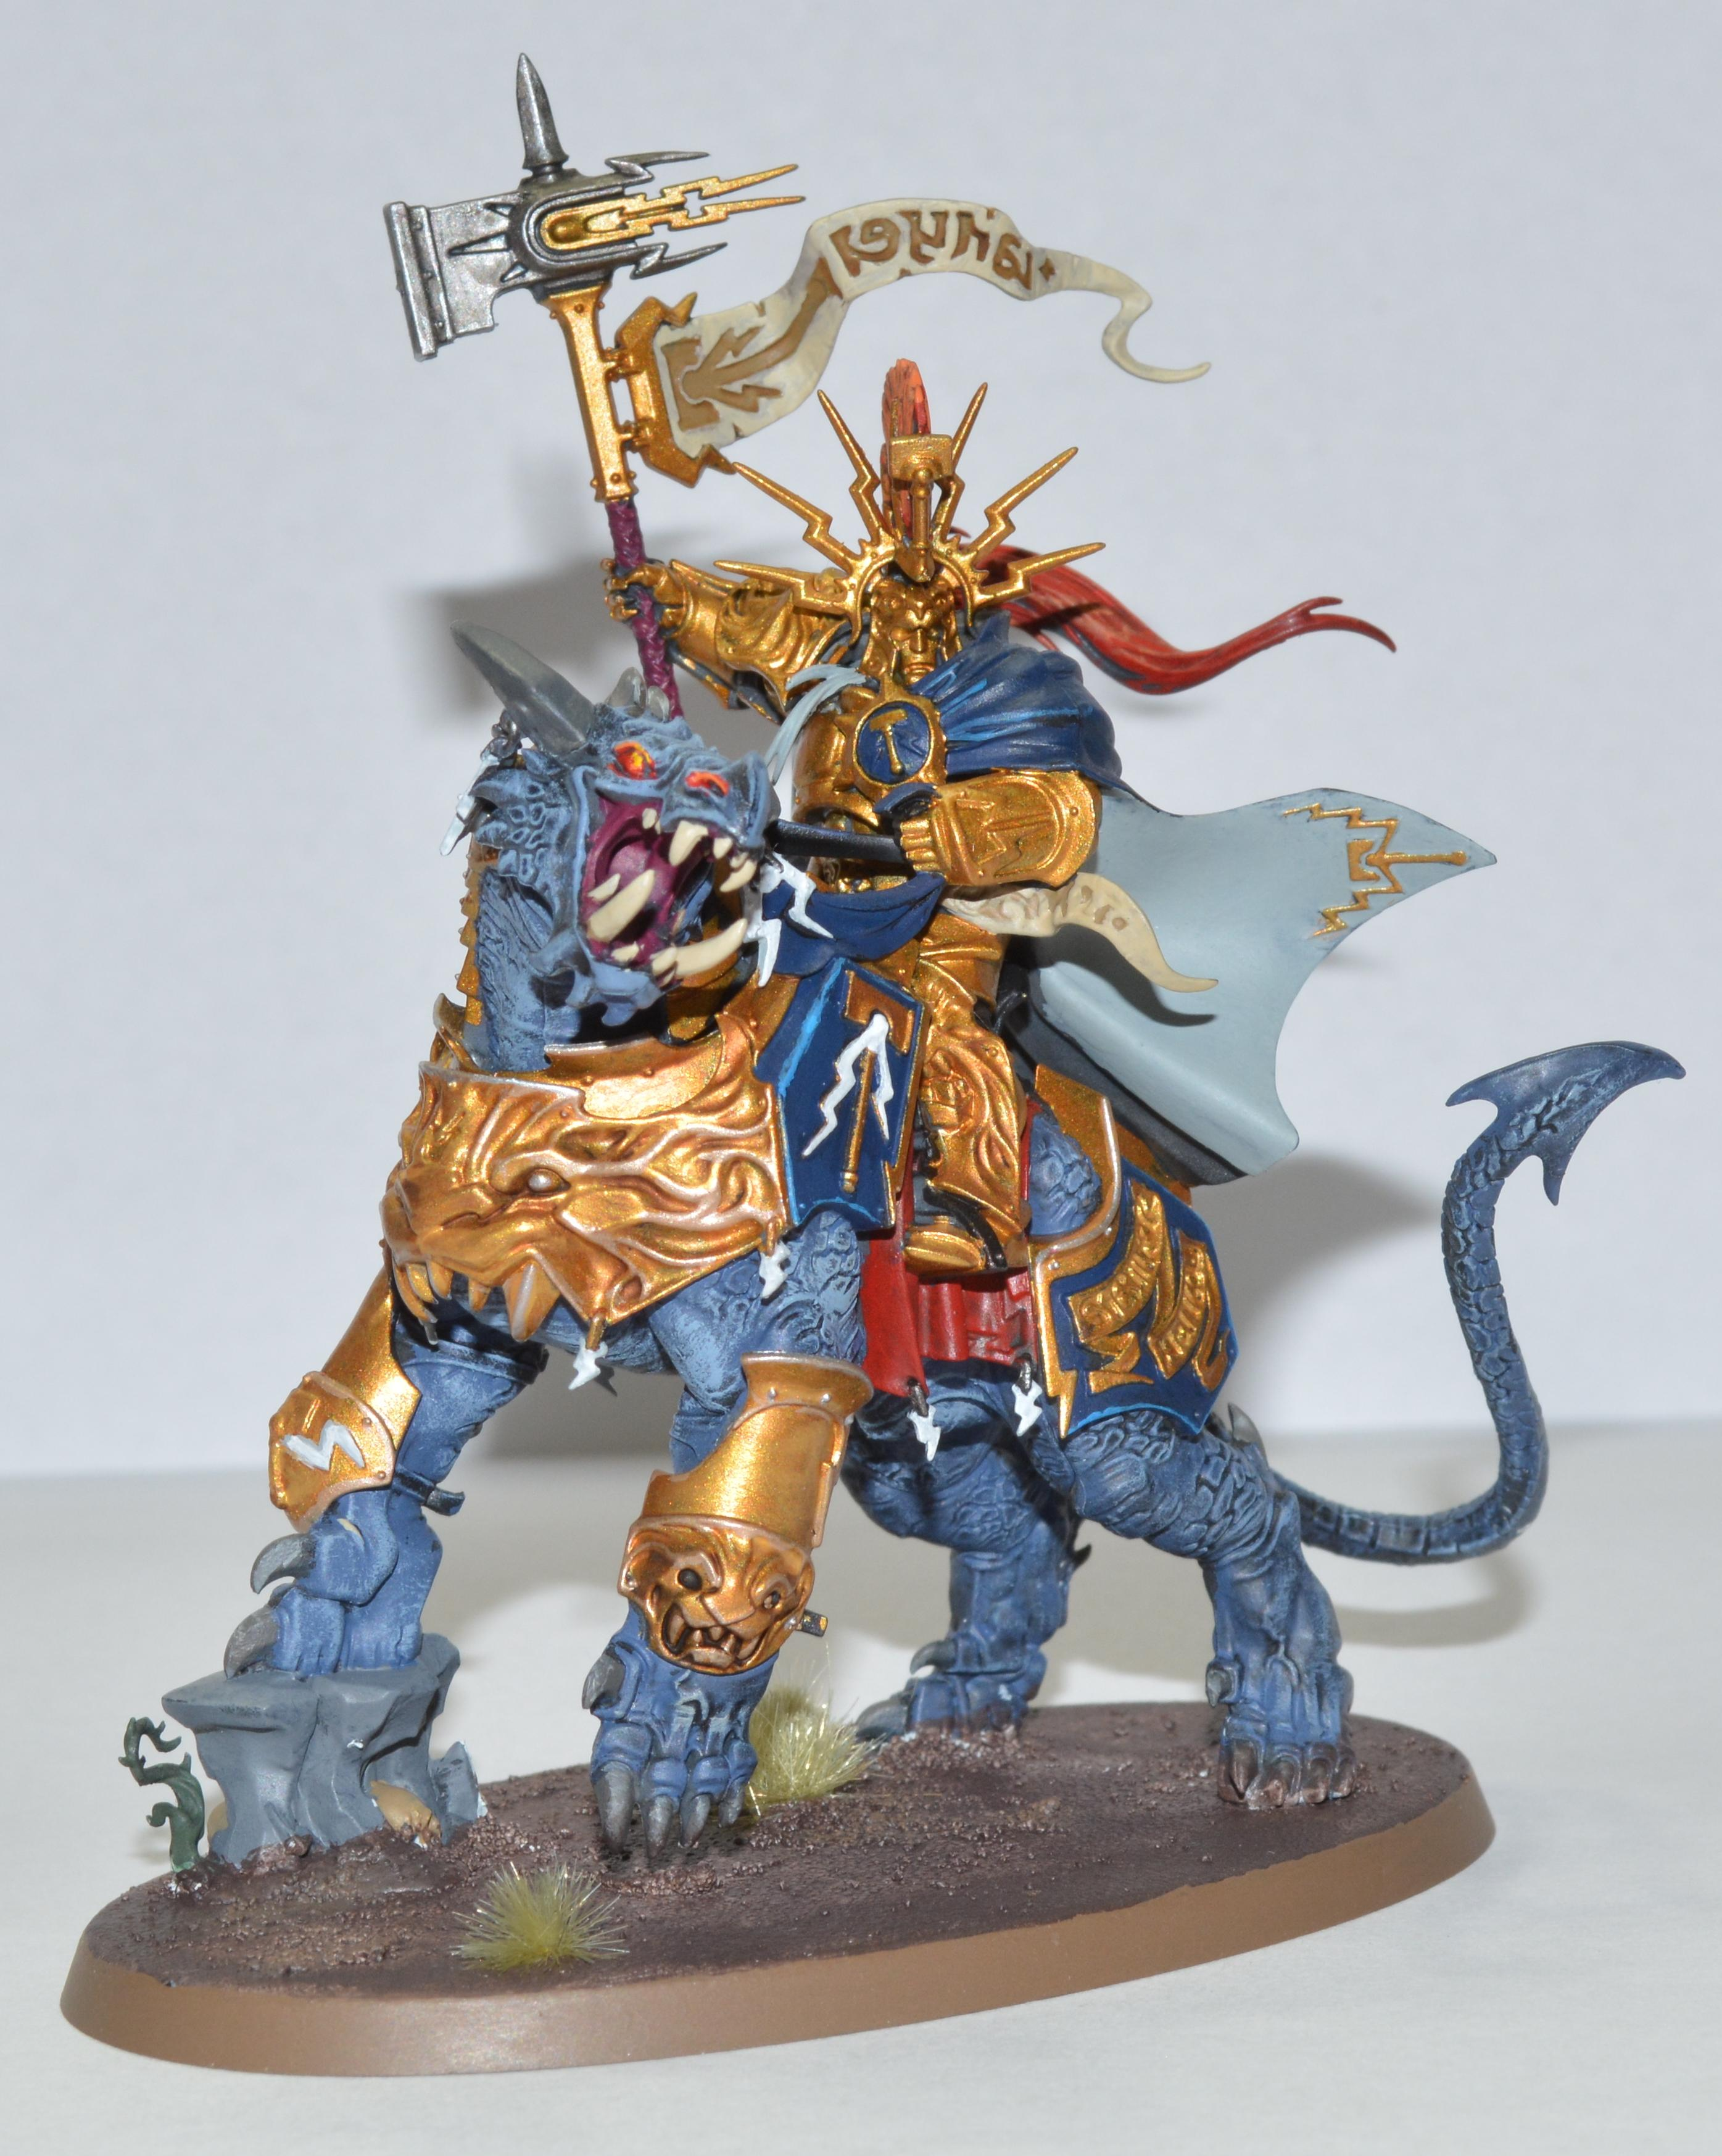 Lord-celestant On Dracoth, Stormcast Eternals